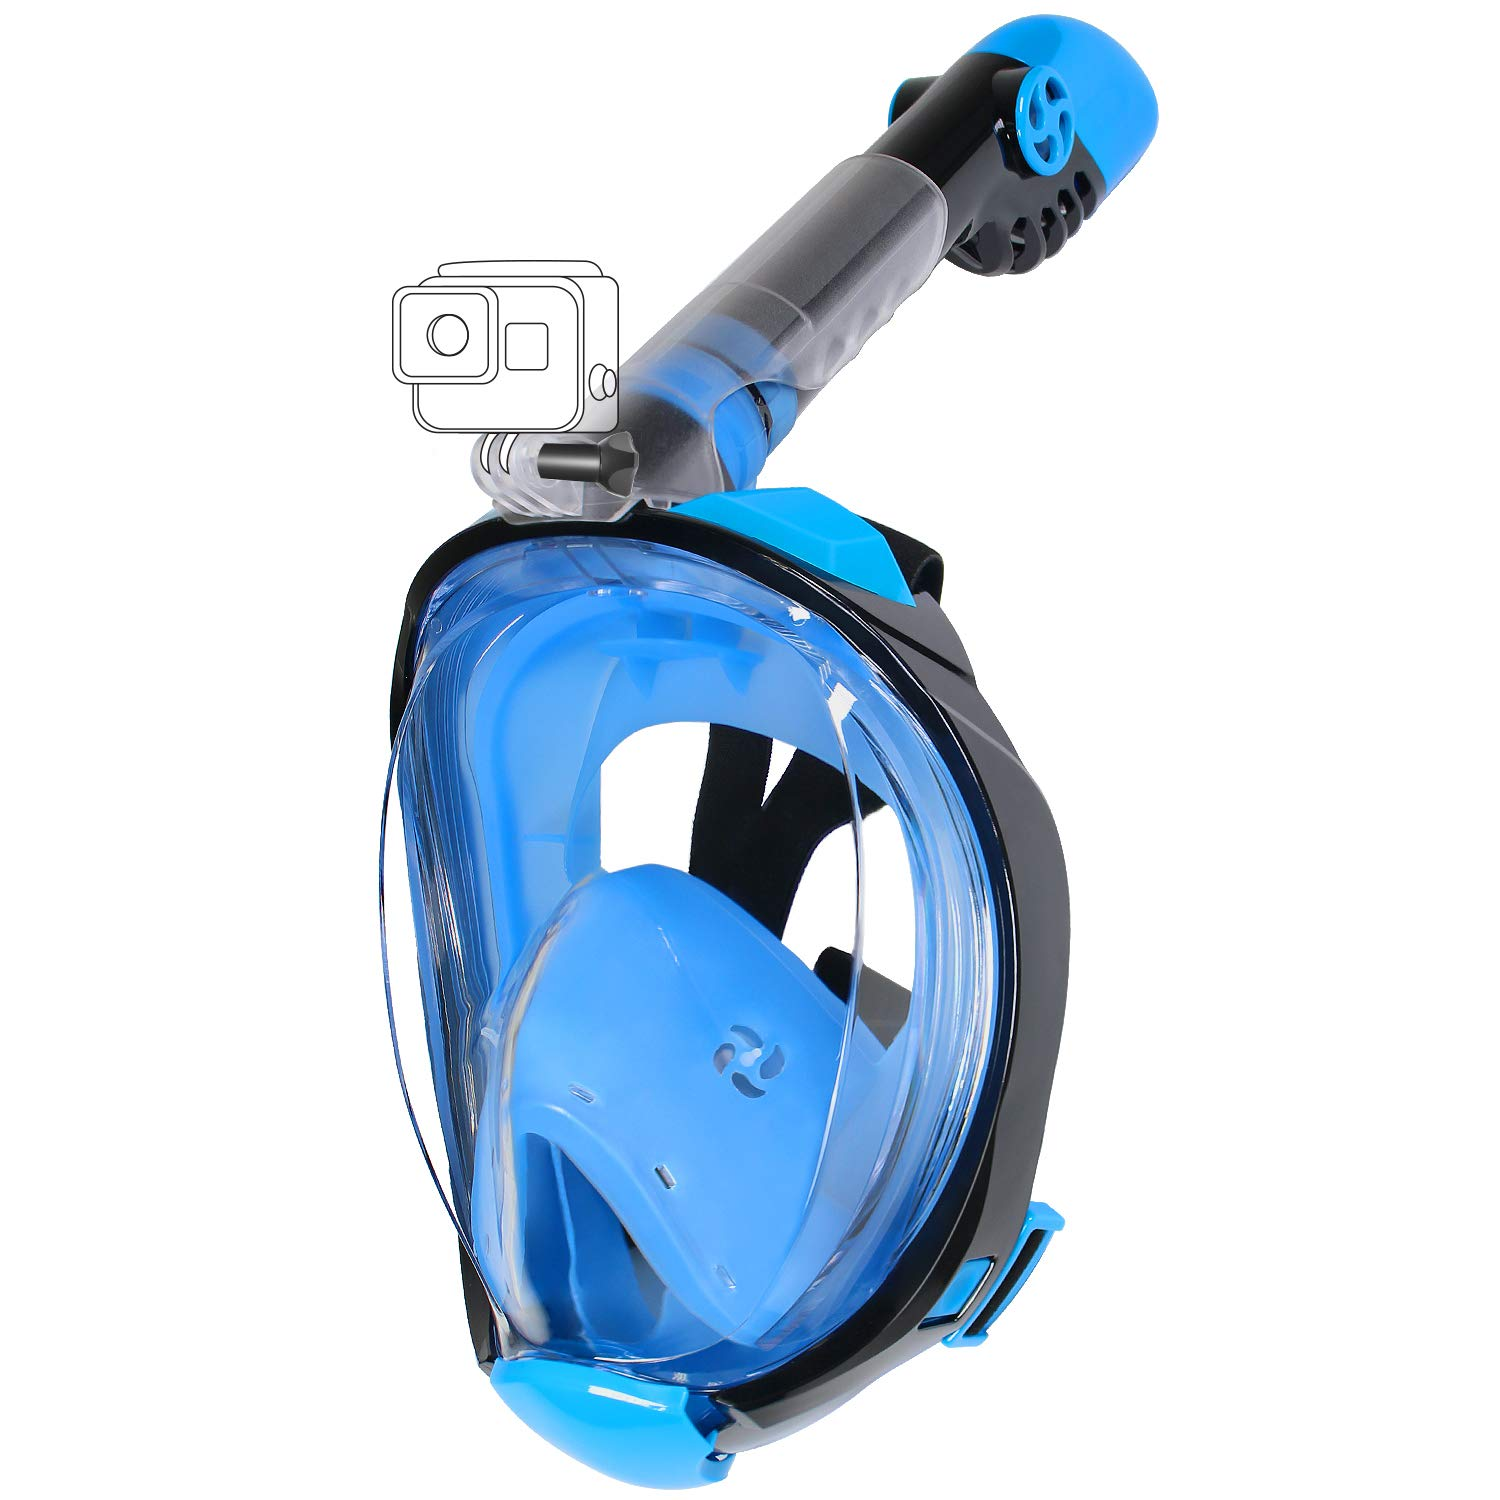 Great snorkel mask